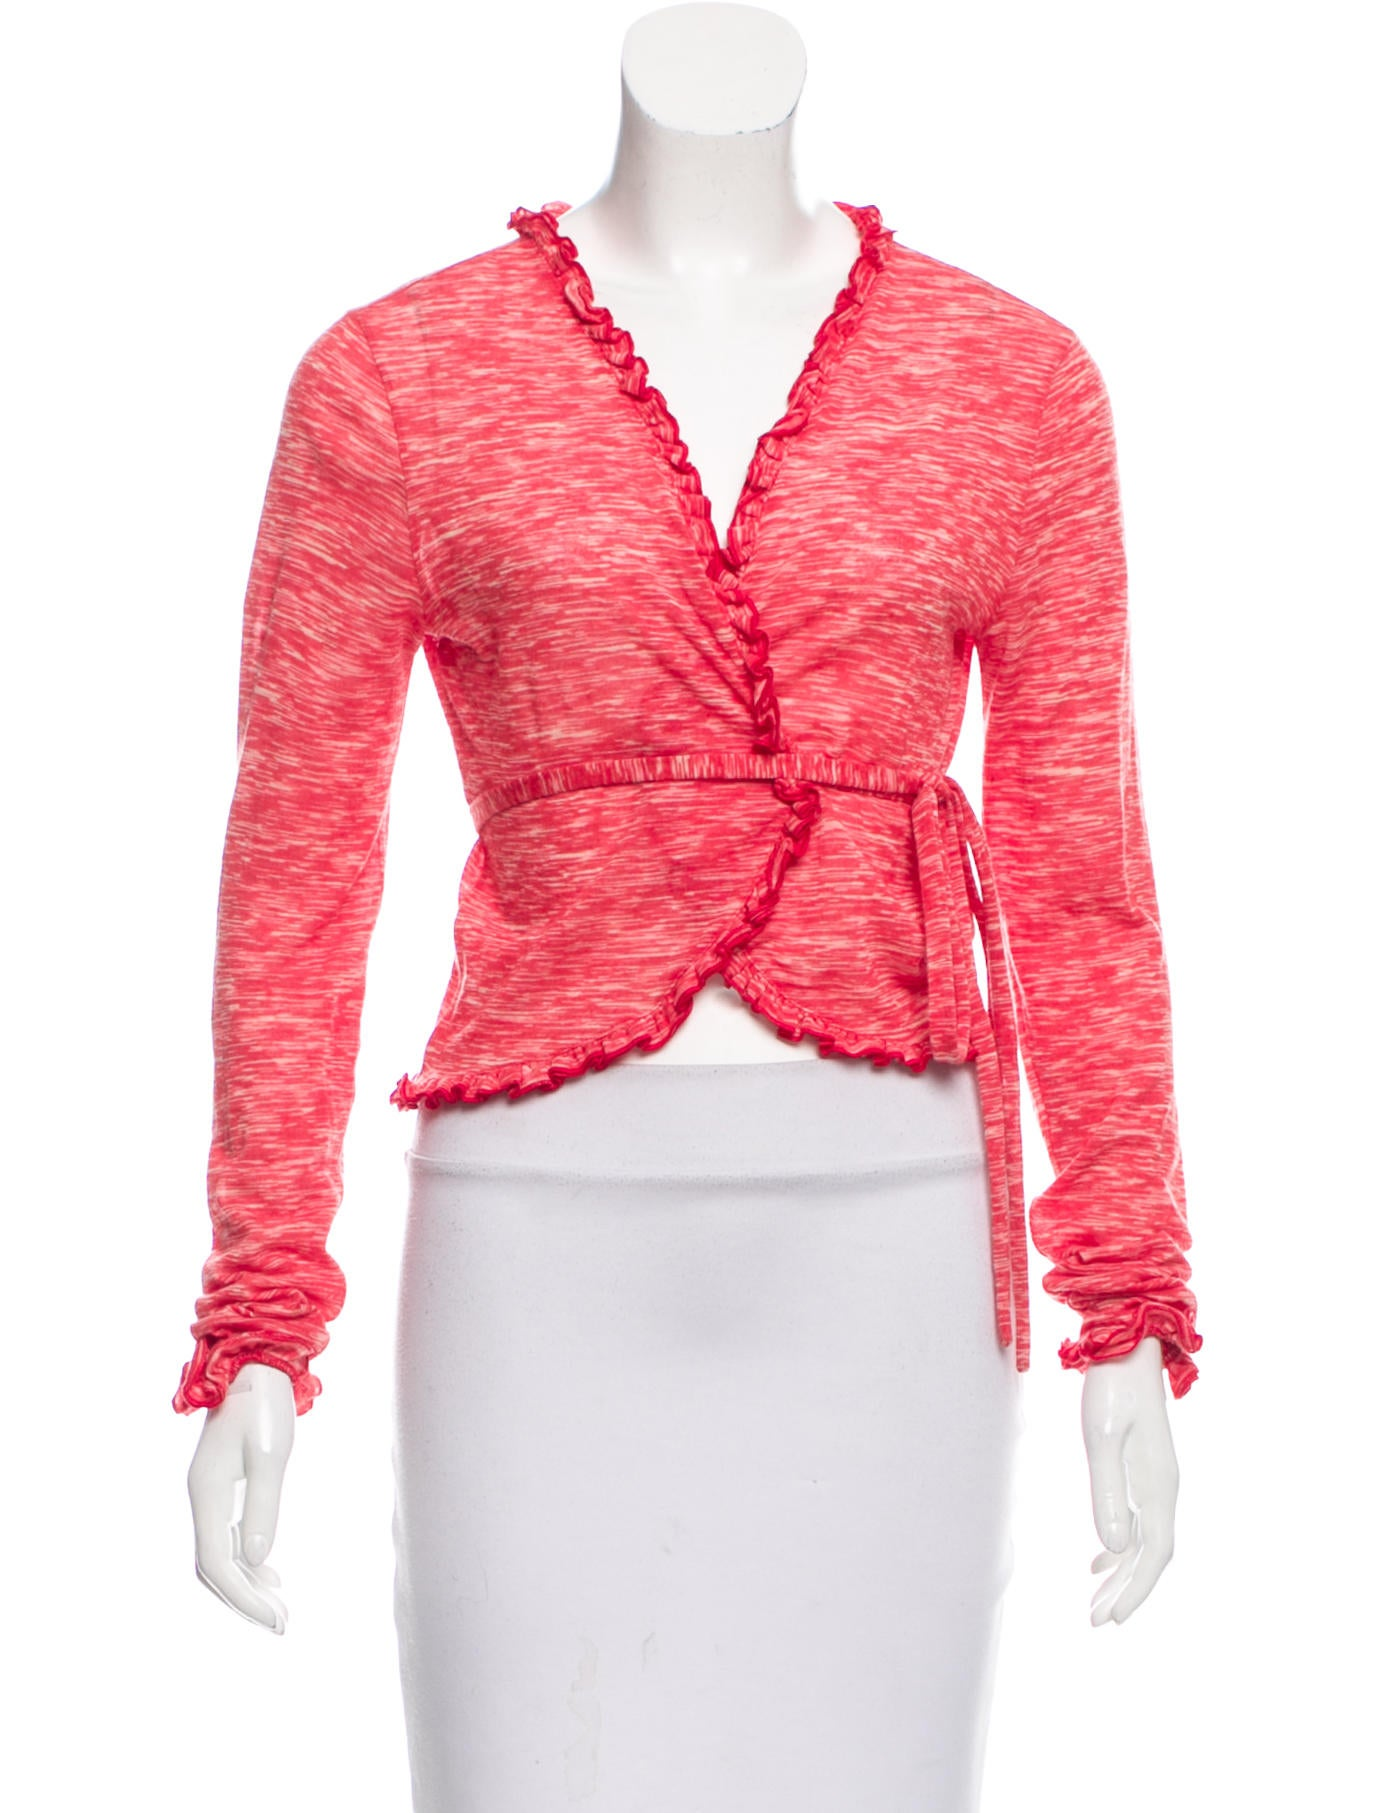 M missoni wool blend cropped top clothing wm439153 for Best wool shirt jackets